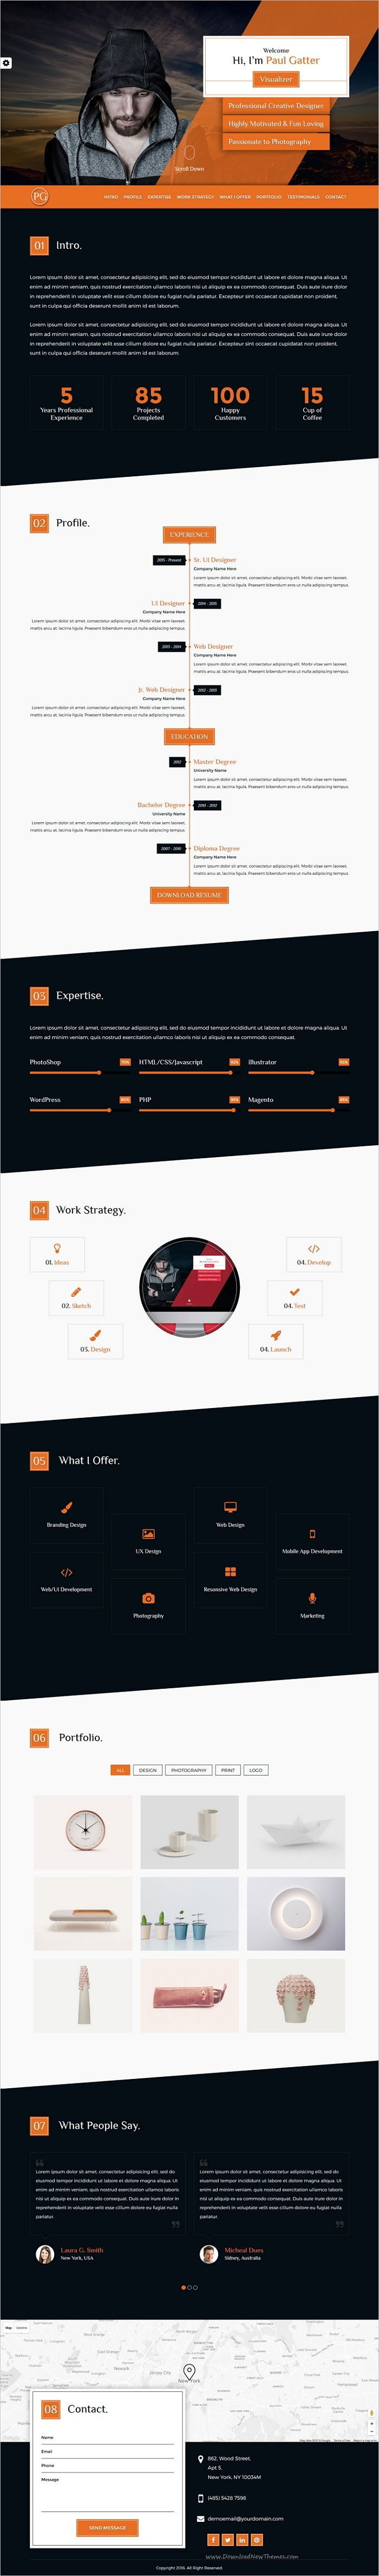 Paul gatter is a unique and modern design responsive #HTML #Bootstrap template for your personal #resume, #CV or your portfolio websites download now➩ https://themeforest.net/item/paul-gatter-resume-portfolio-template/18993230?ref=Datasata